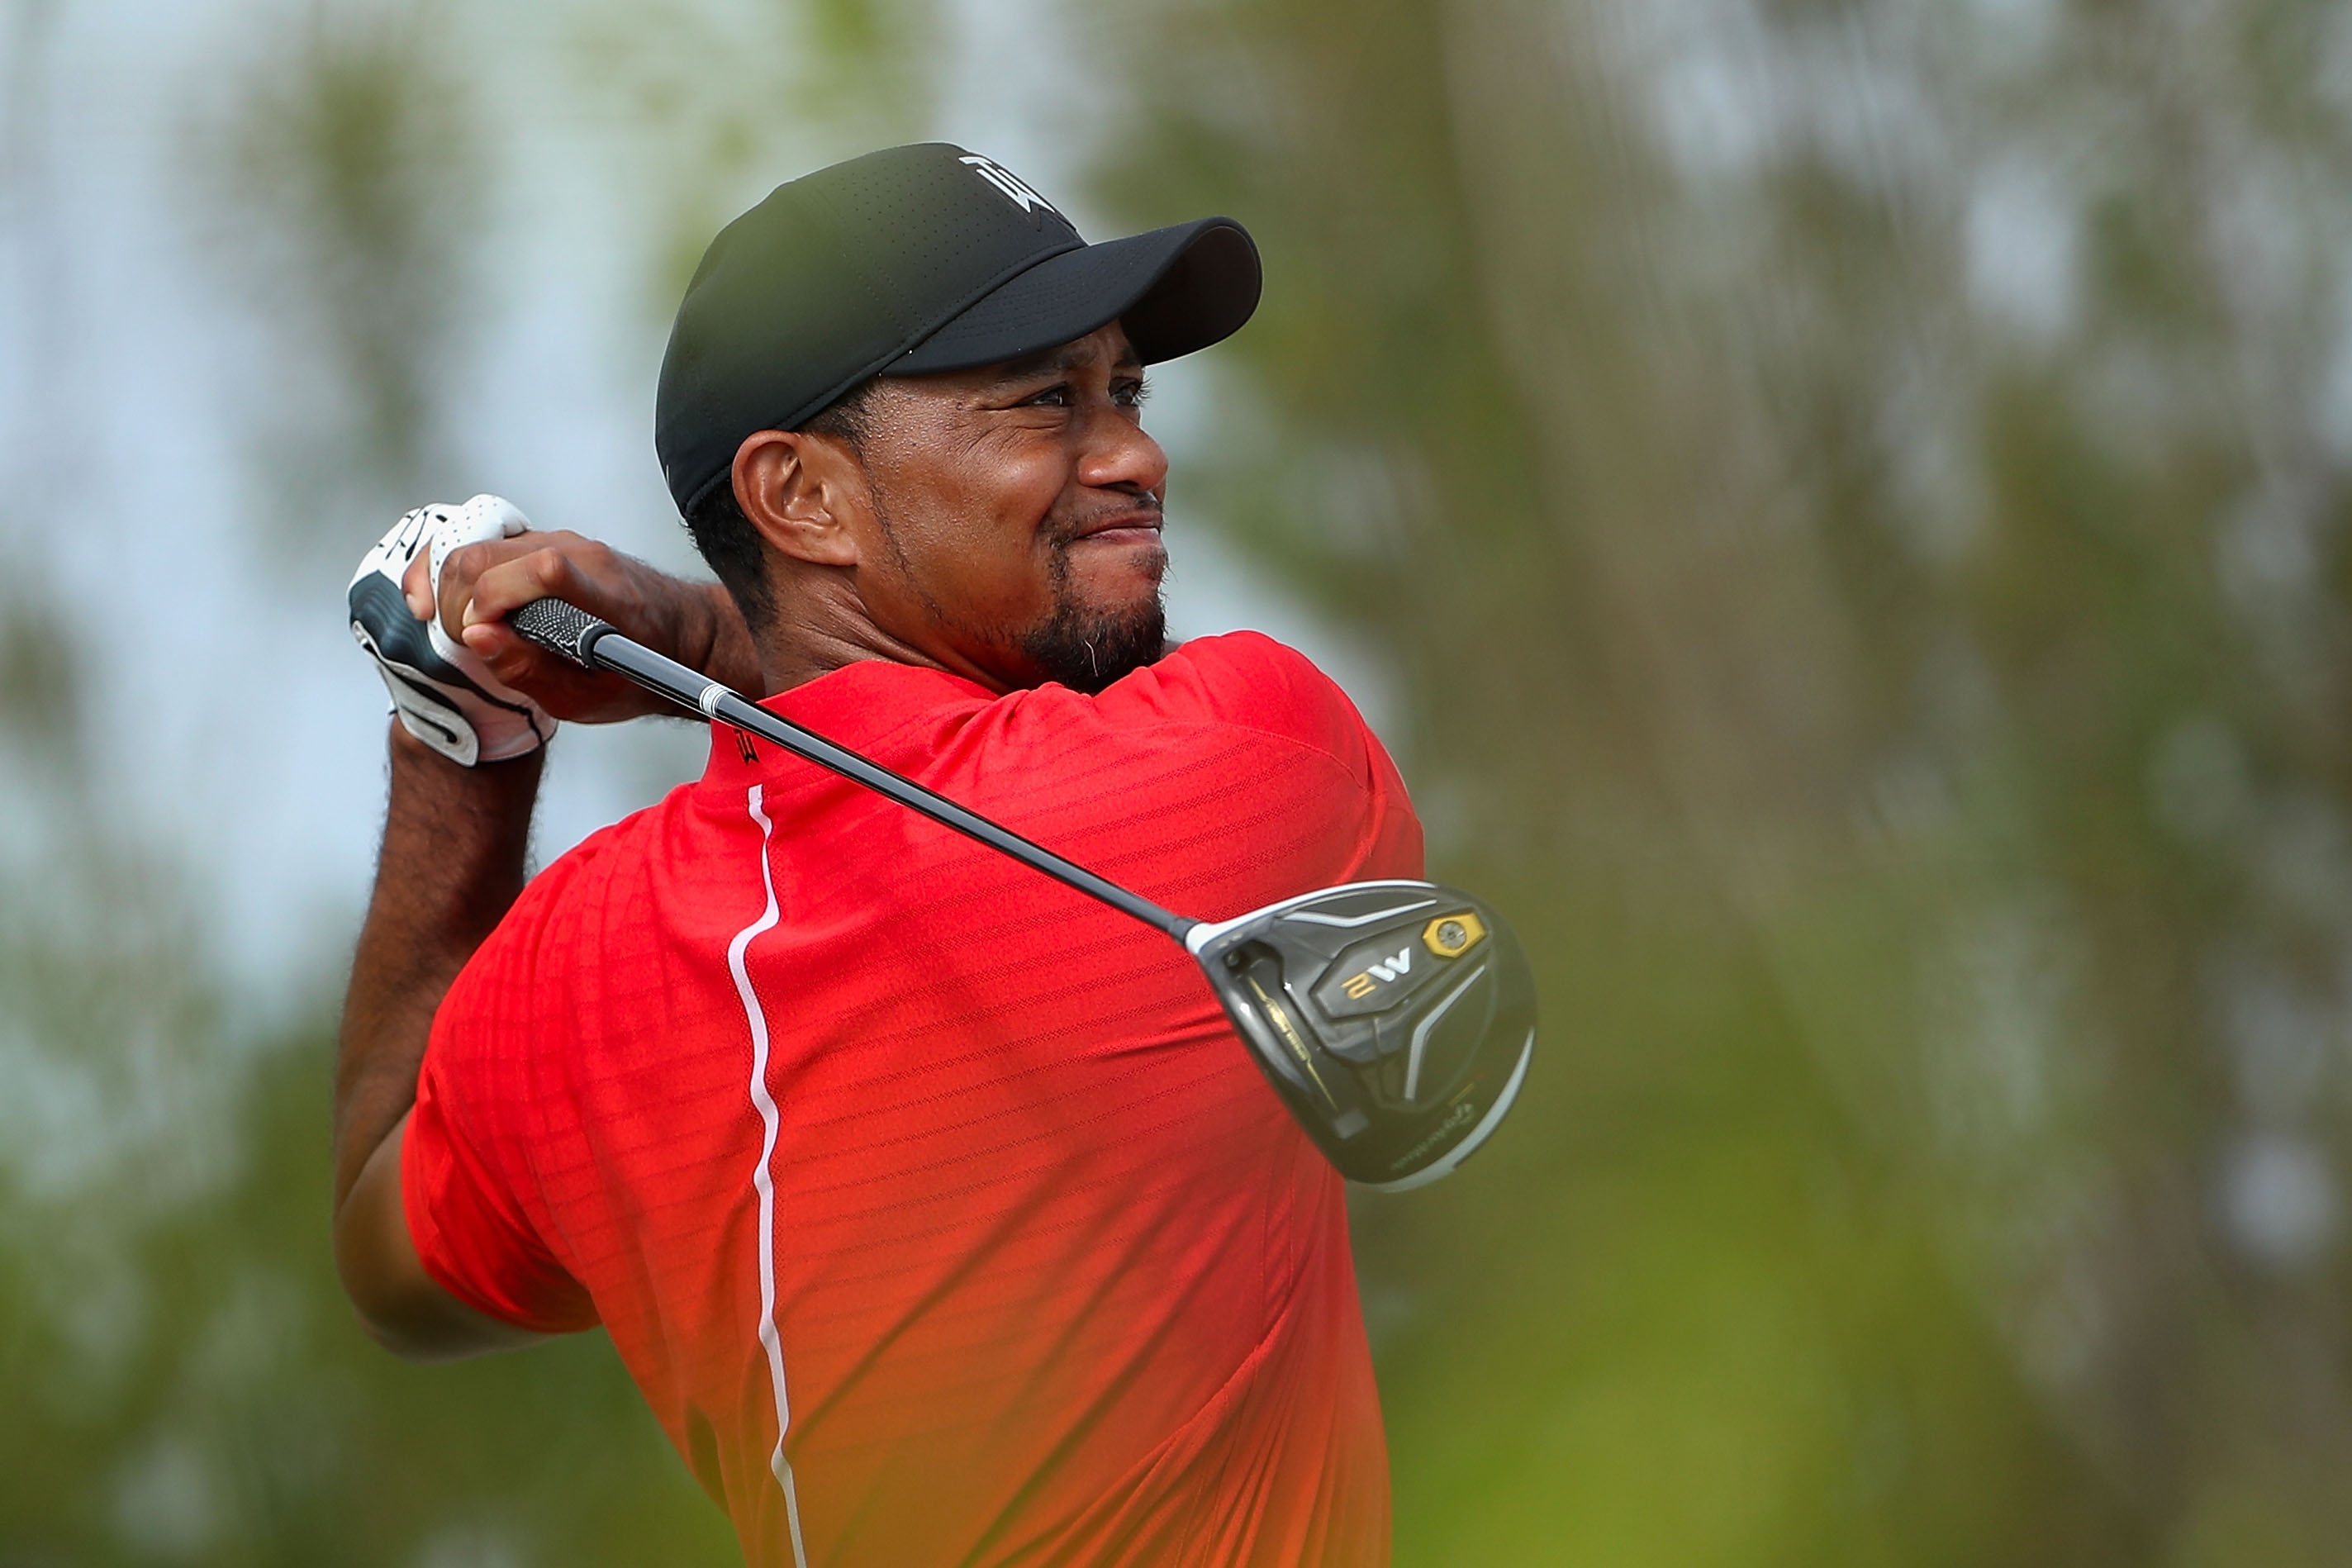 Tiger's comeback: The astonishing statistics of a great